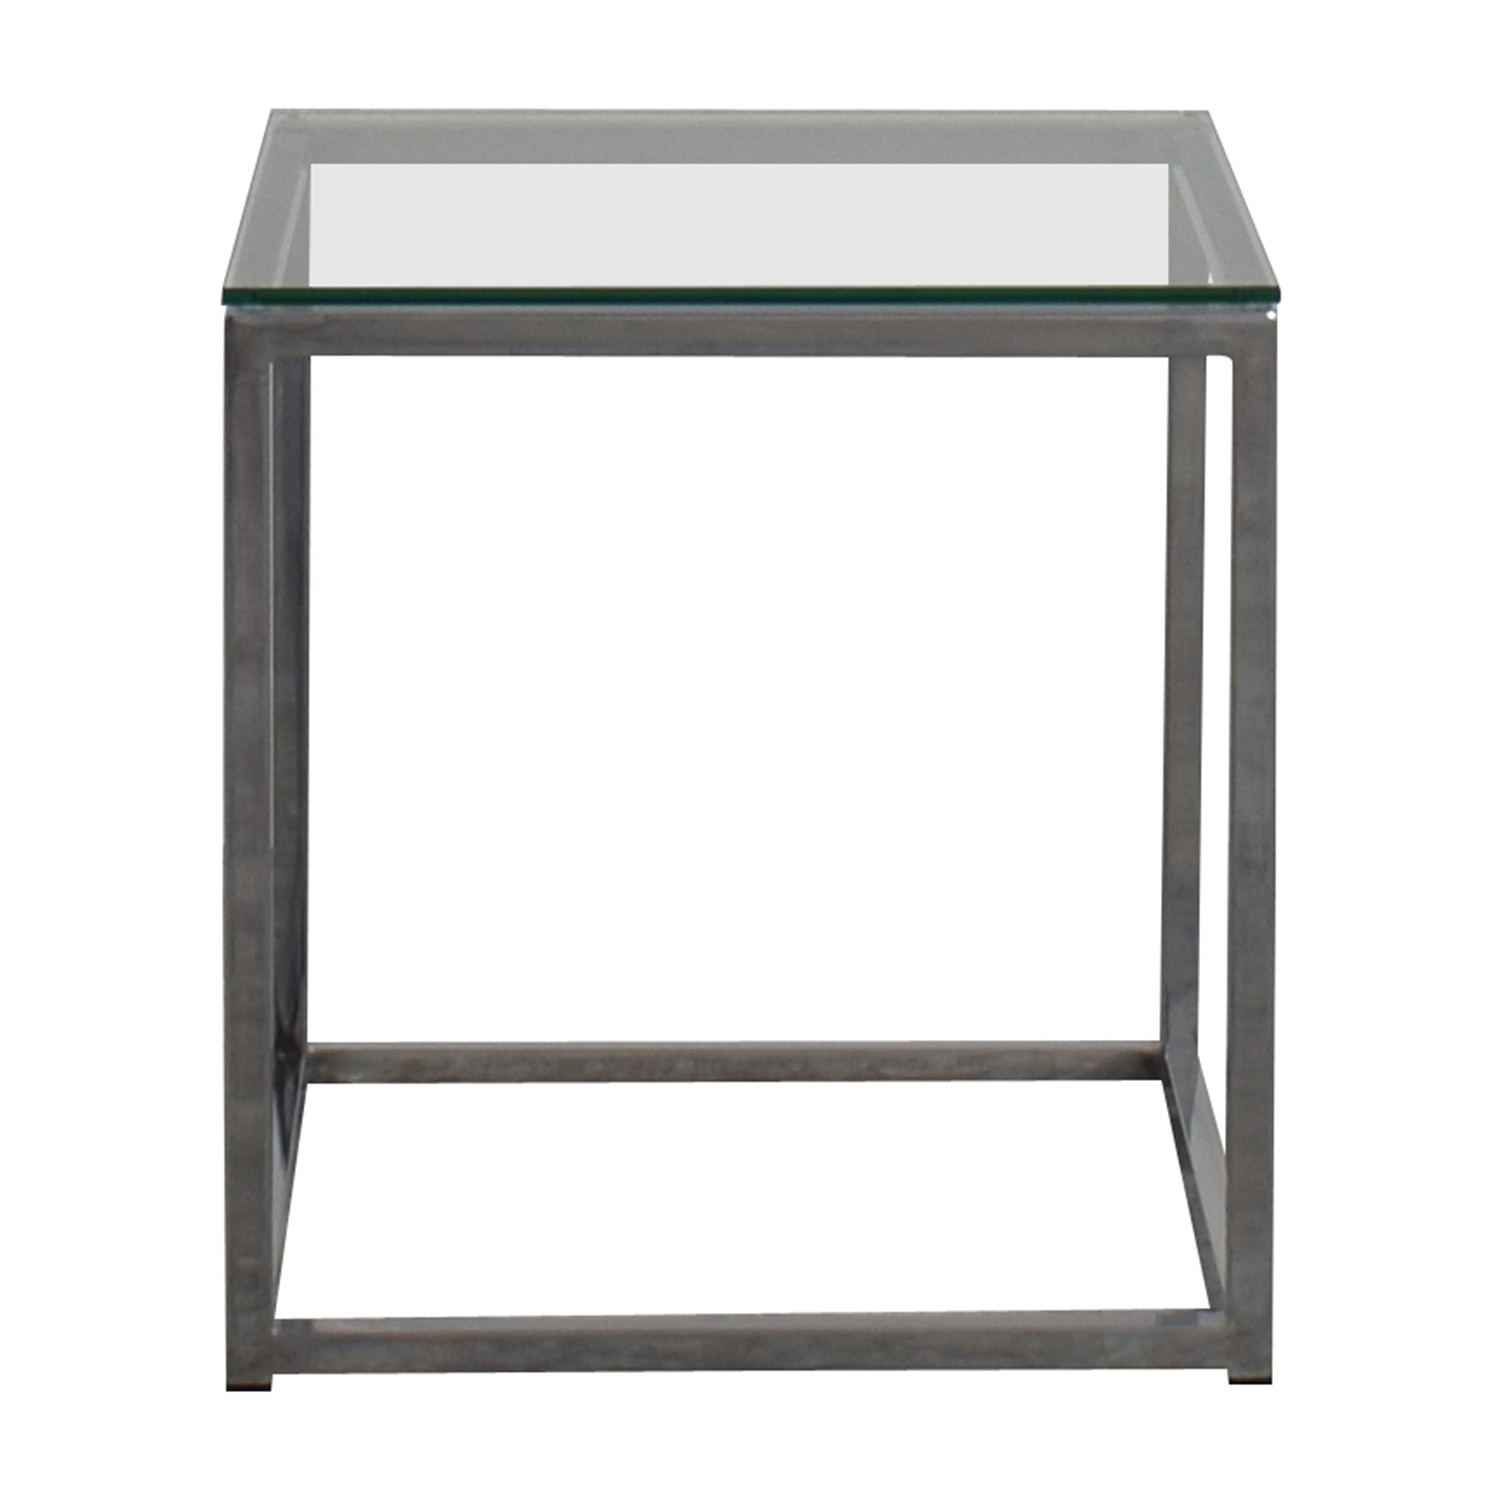 80 Off Cb2 Cb2 Smart Glass Top Side Table Tables